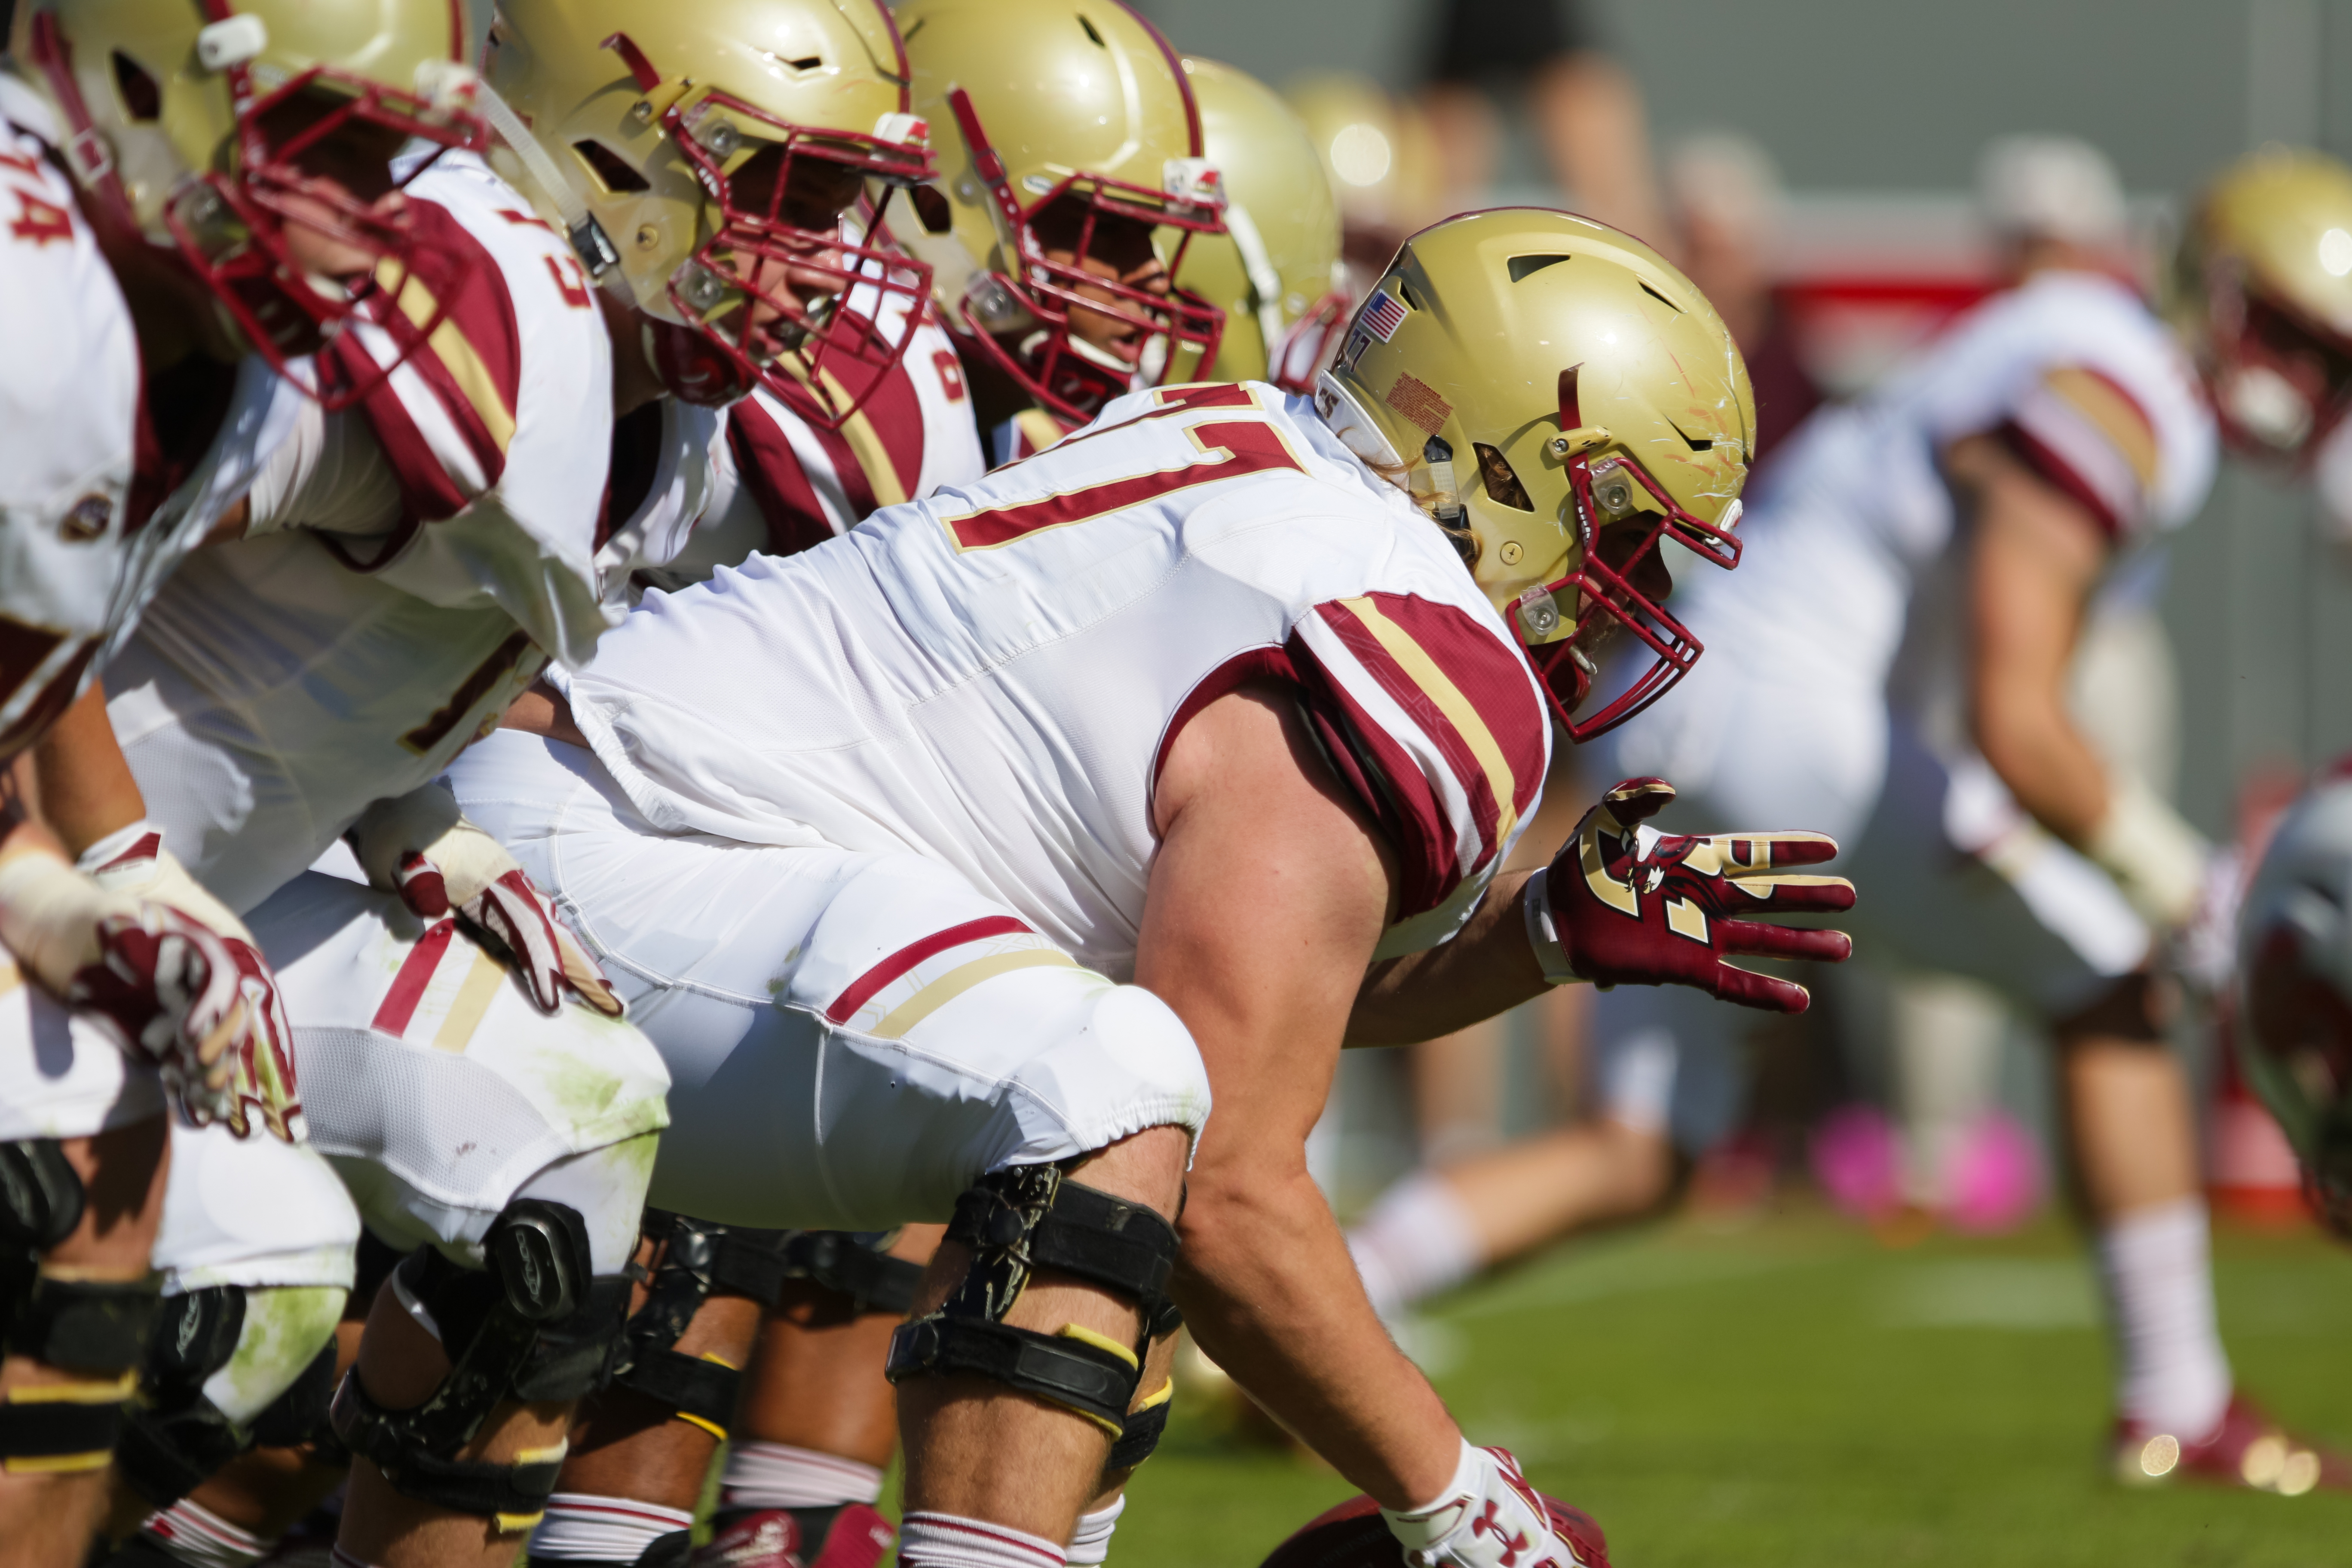 NCAA FOOTBALL: OCT 29 Boston College at NC State